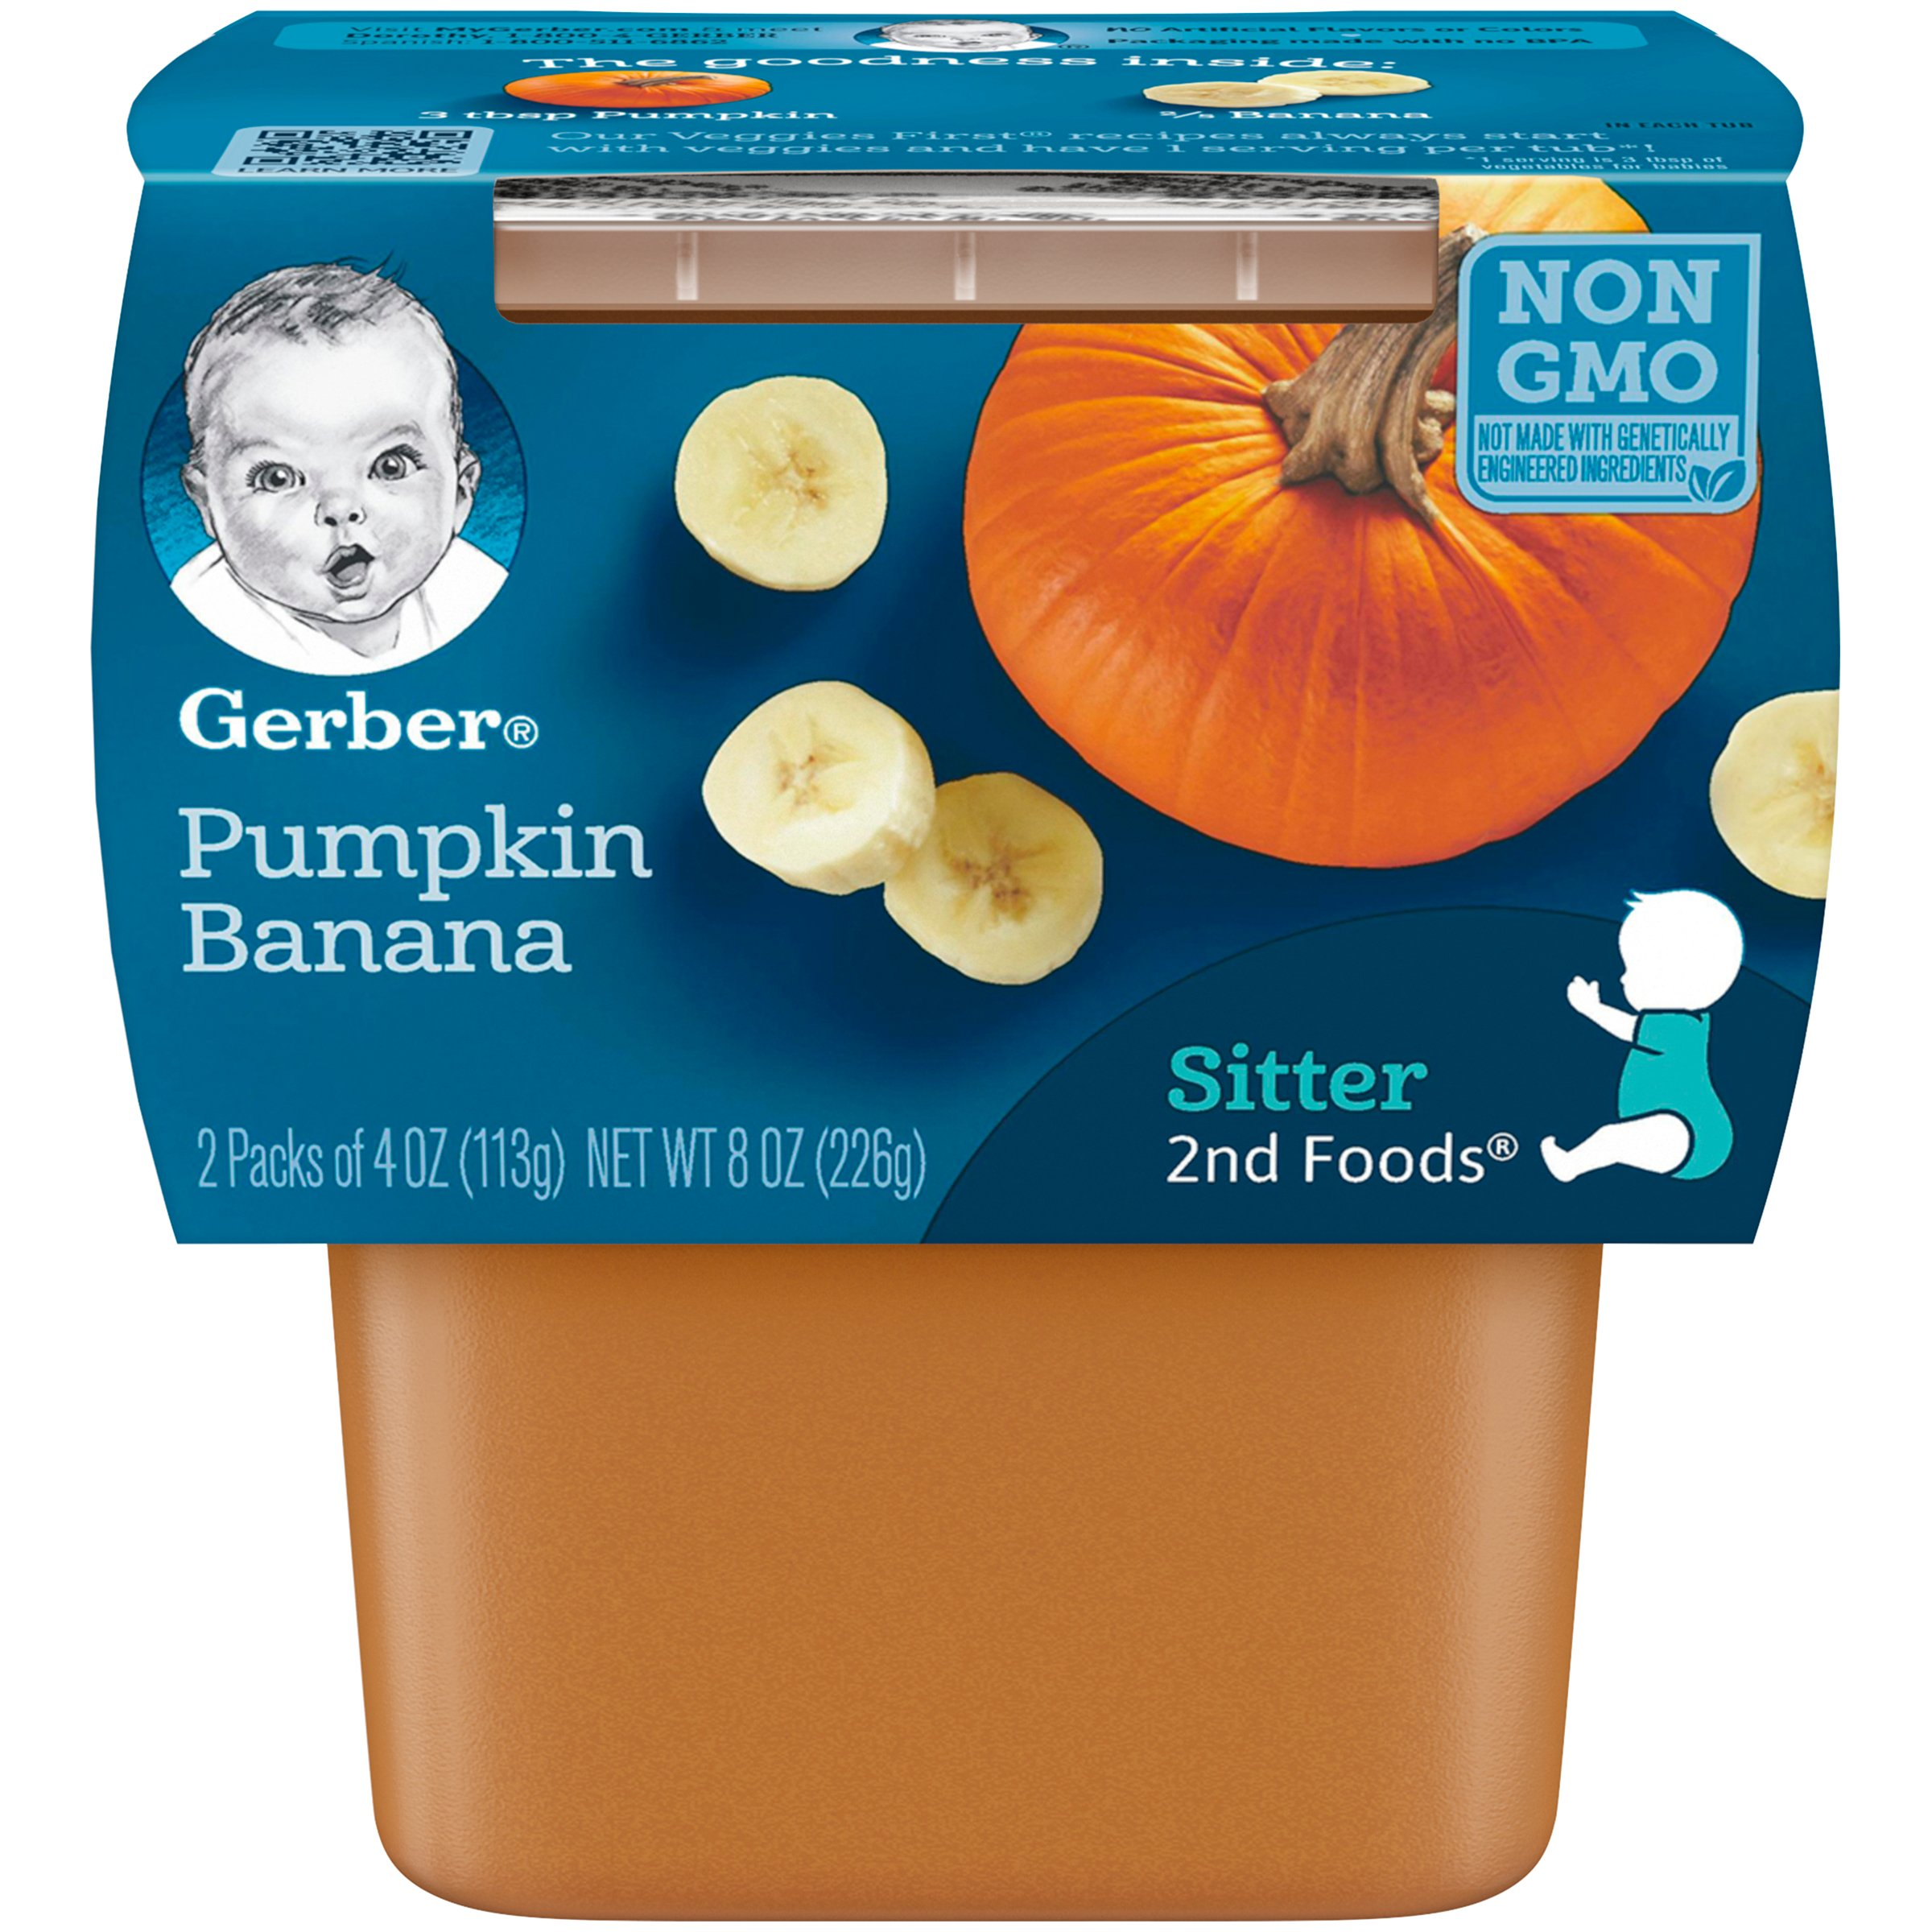 Gerber 2nd Foods Pumpkin Banana Baby Food (Pack of 8) by Gerber Purees